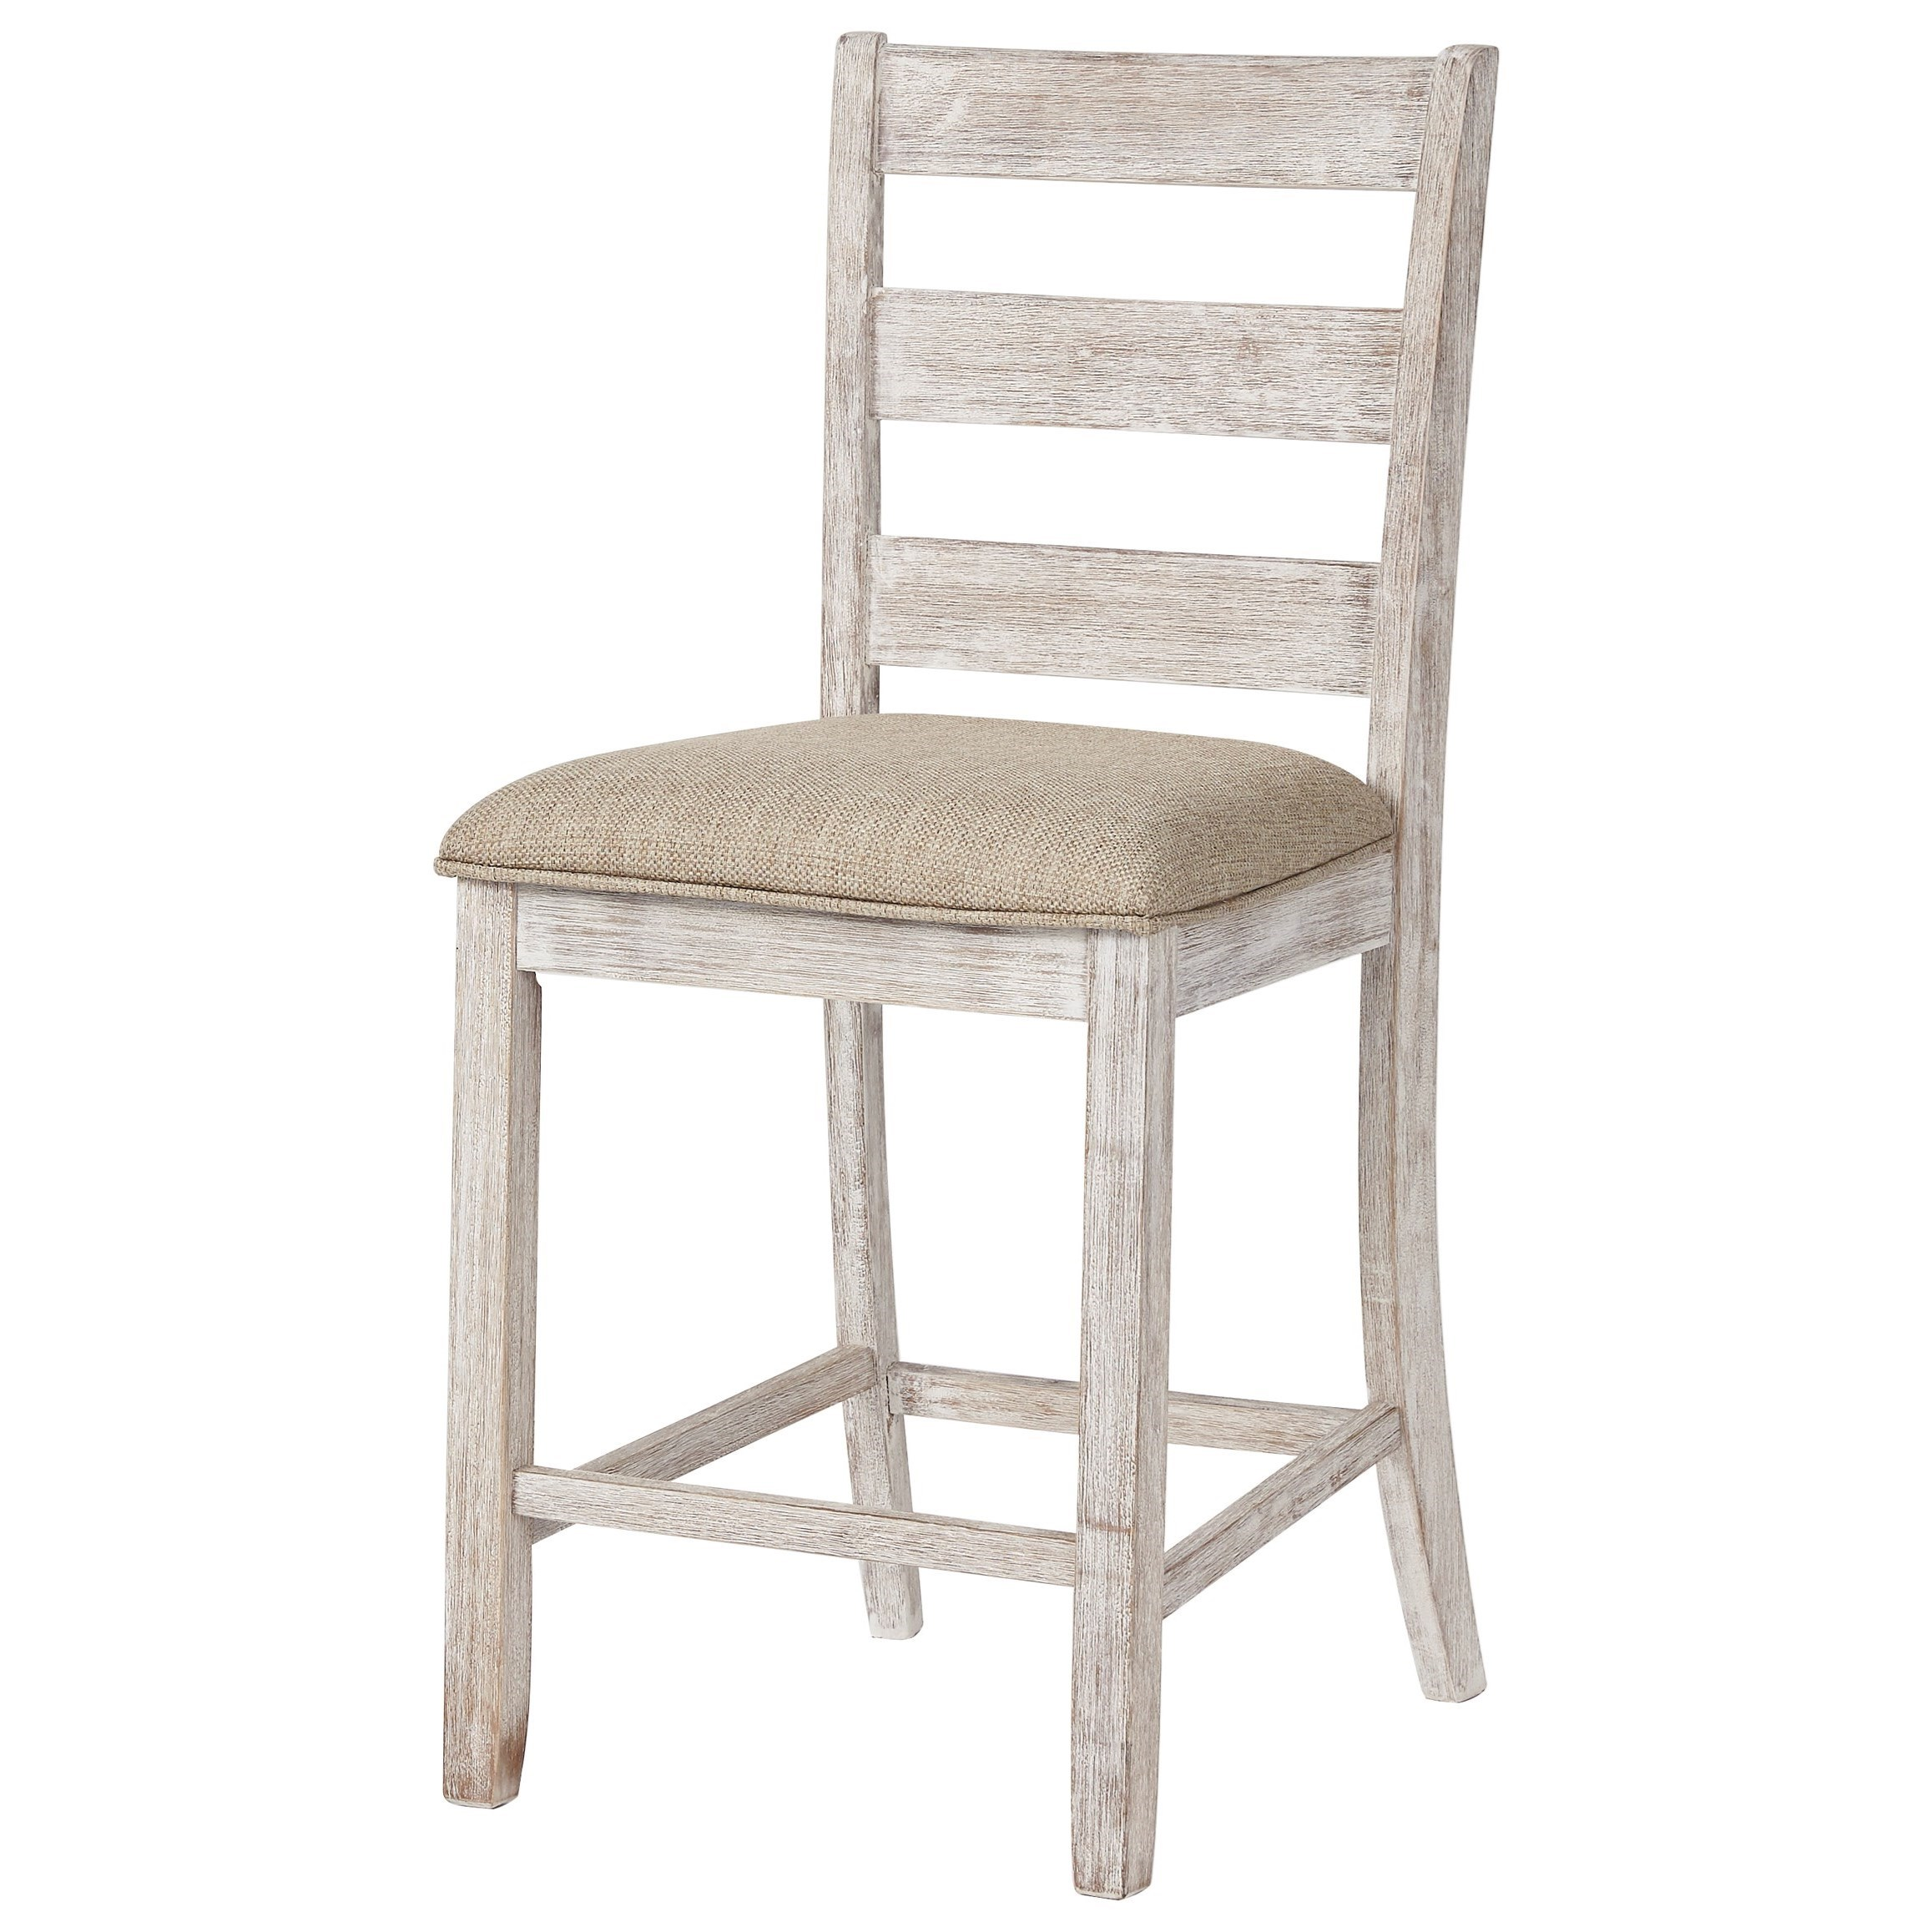 Skempton Upholstered Barstool by Ashley at Morris Home